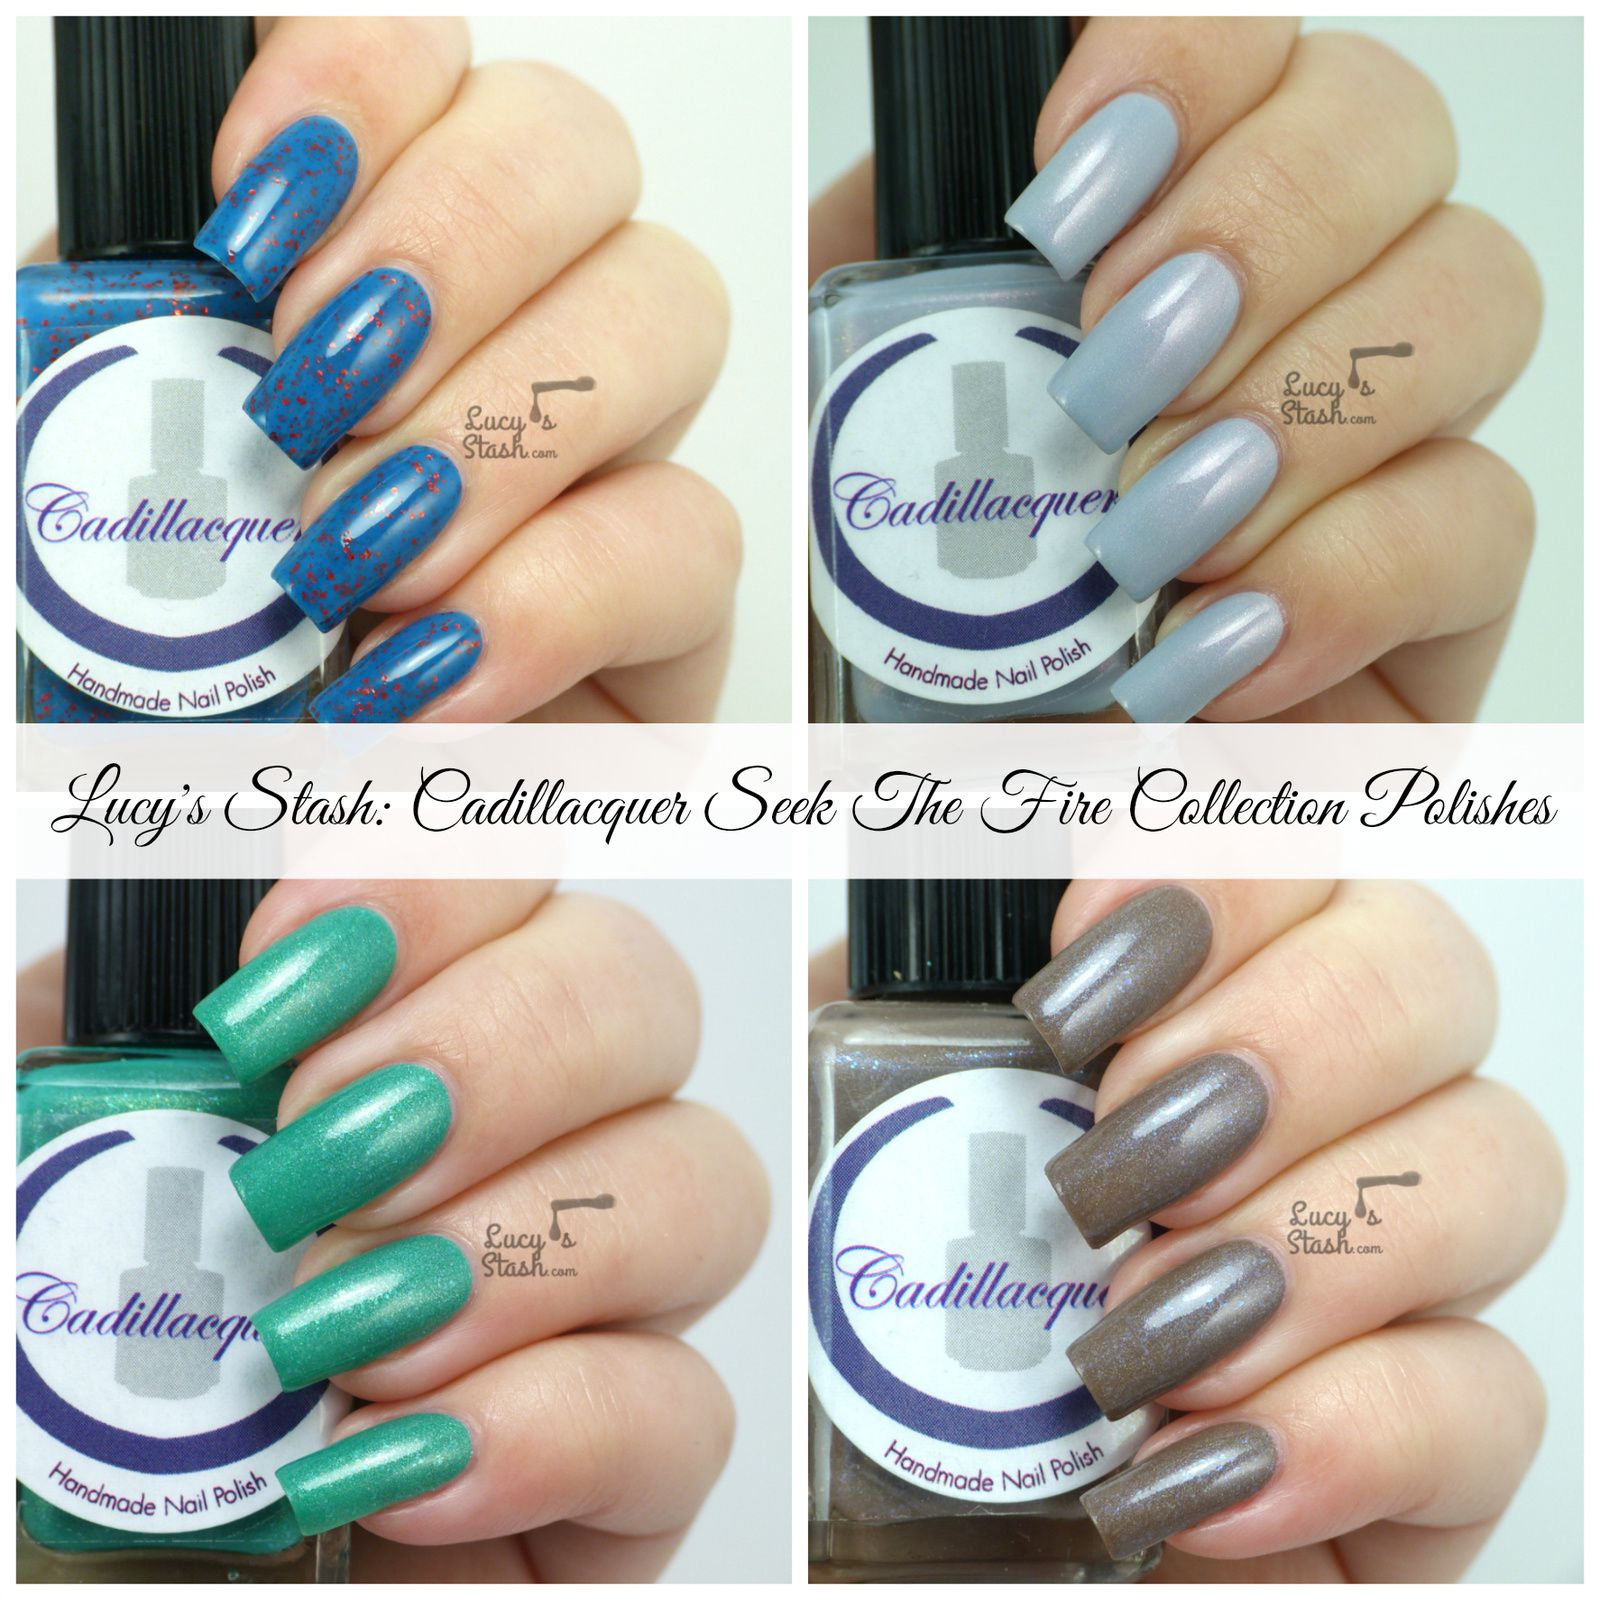 Cadillacquer Seek The Fire Collection - Review &amp&#x3B; Swatches of Four Shades